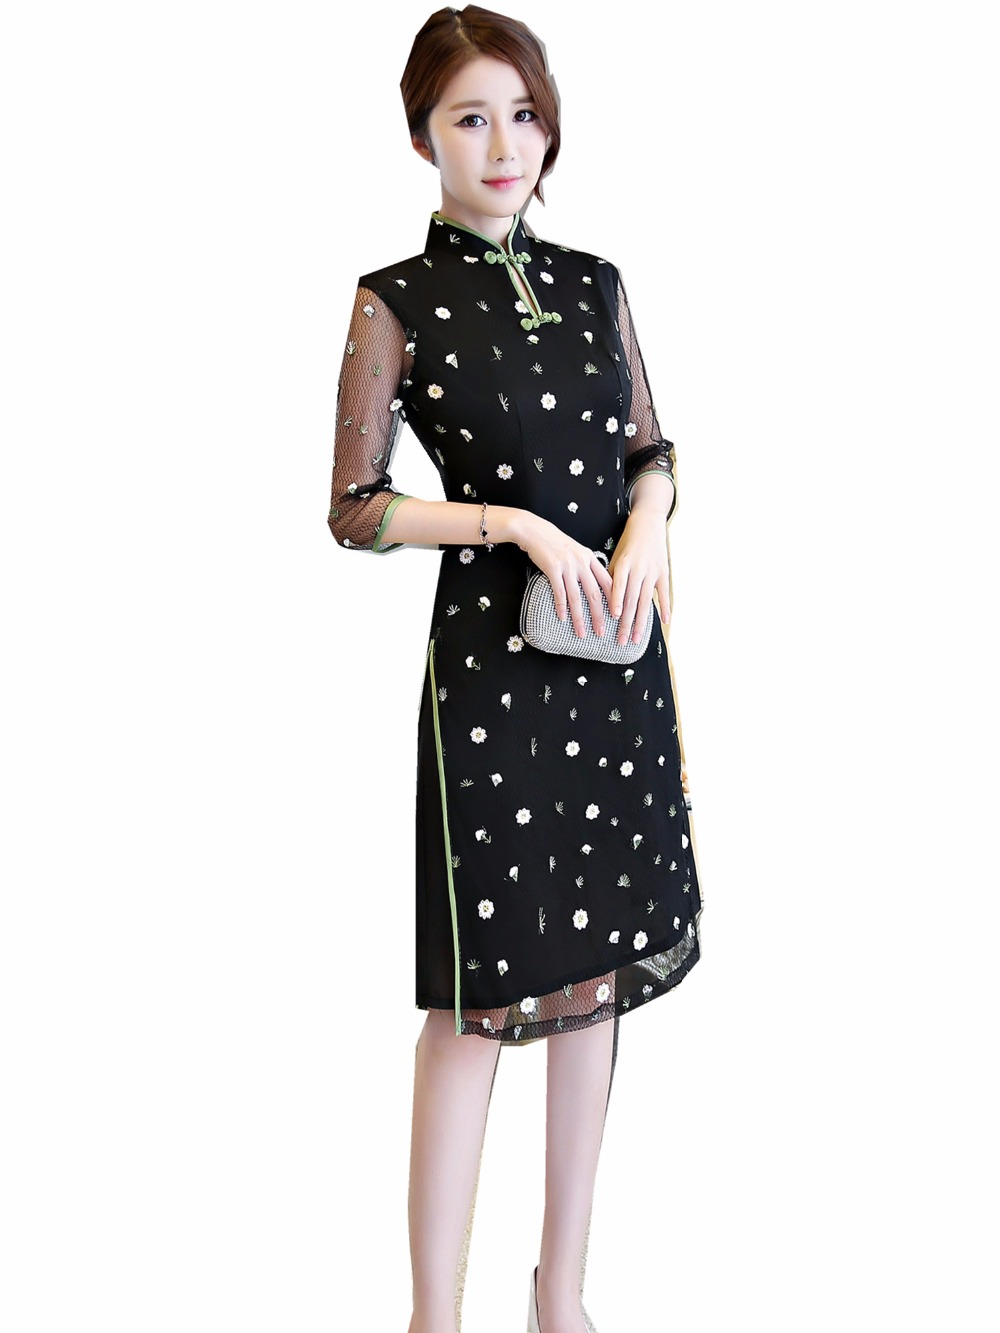 Shanghai Story Chinese Style <font><b>Dress</b></font> <font><b>Vietnam</b></font> aodai Chinese <font><b>traditional</b></font> <font><b>dress</b></font> cheongsam <font><b>dress</b></font> robe chinoise Qipao <font><b>Dress</b></font> 2 Color image